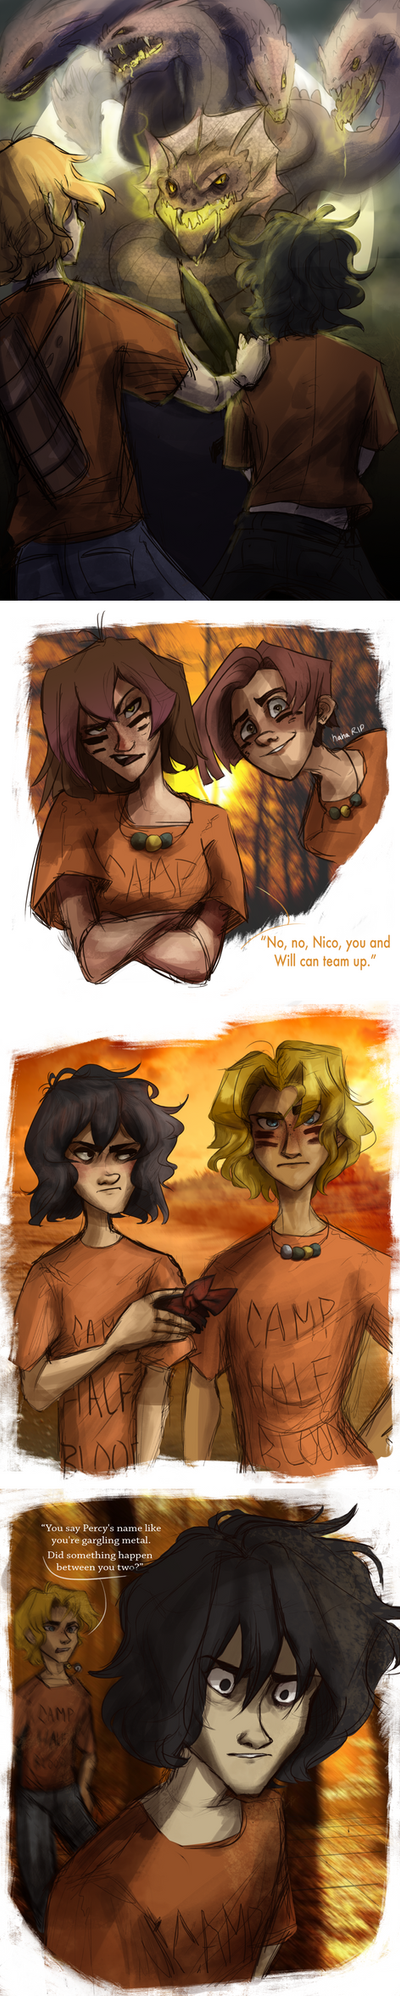 Reigniting the Oracle .:. Chapter Two by sjsaberfan